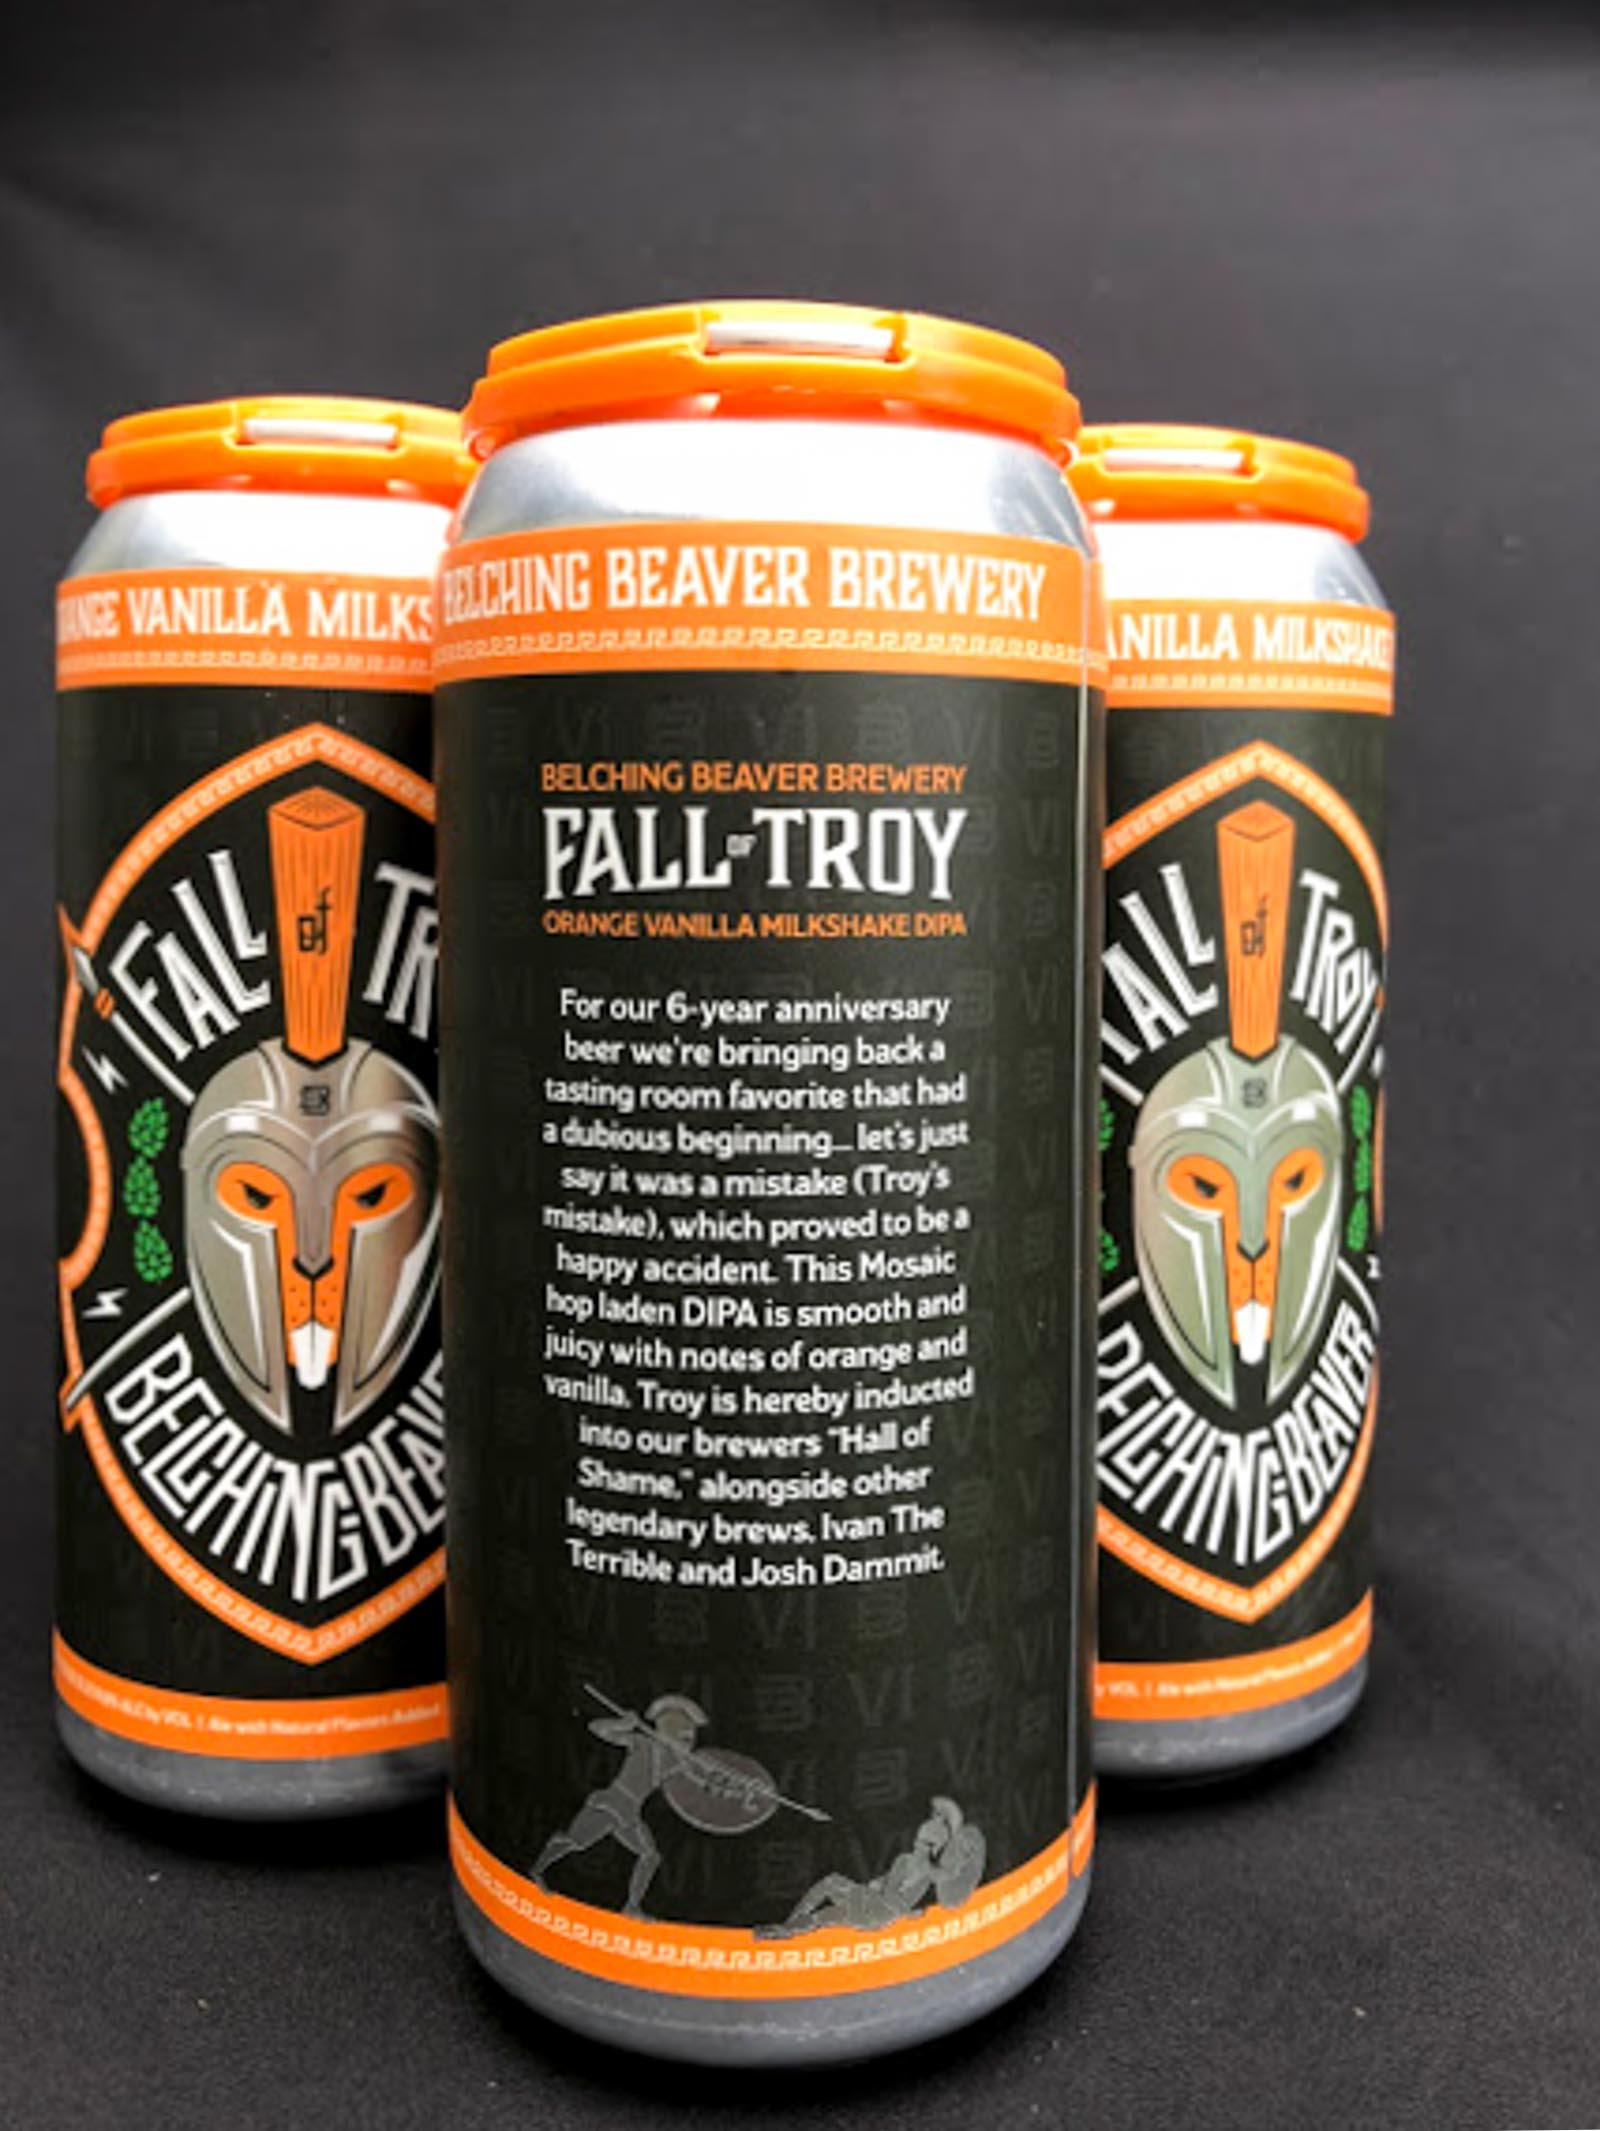 Belching Beaver Fall of Troy Orange Milkshake DIPA